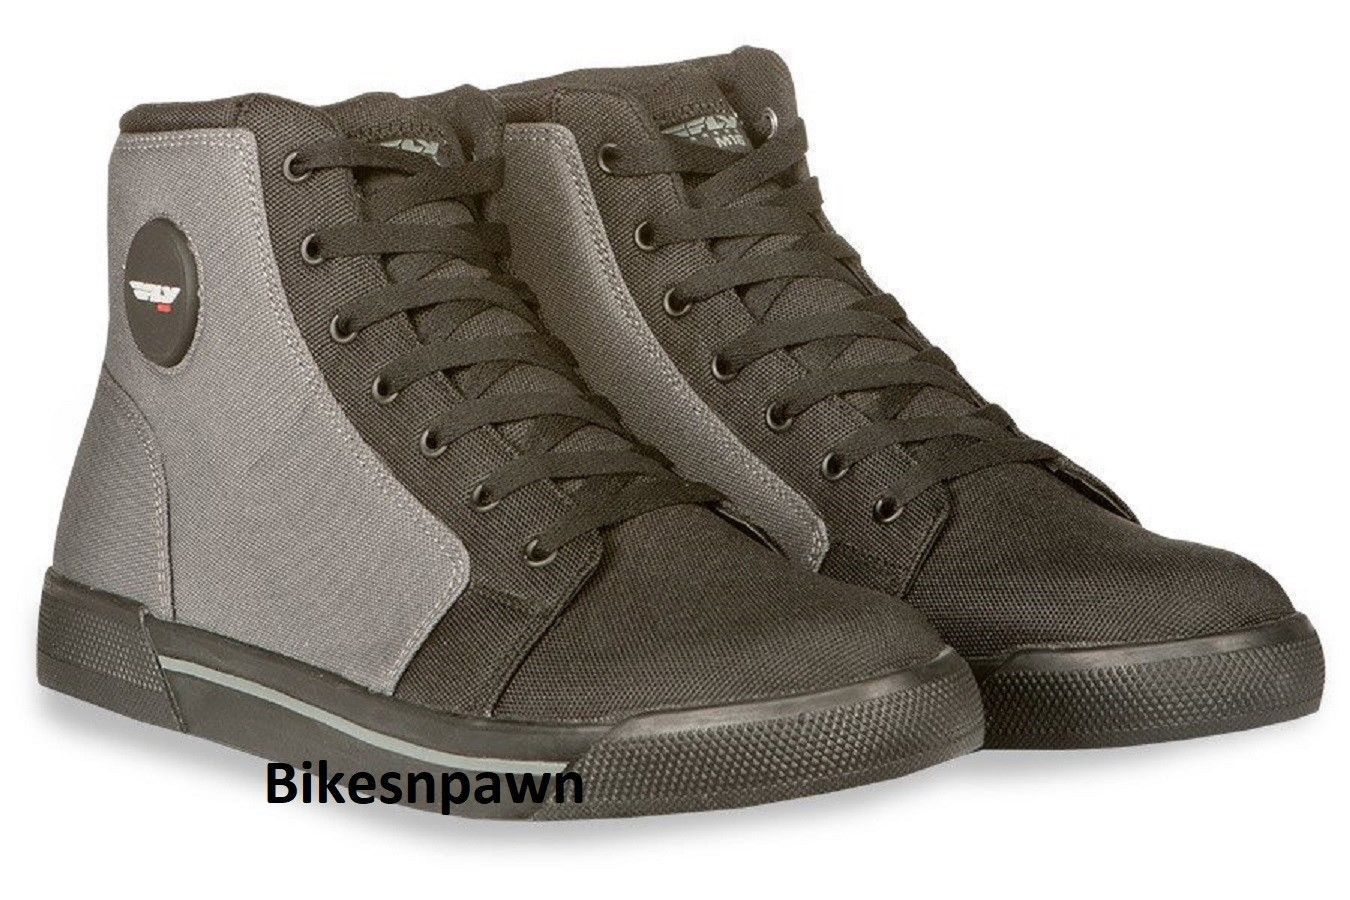 New Size 10 Mens FLY Racing M16 Canvas Motorcycle Street Riding Shoe